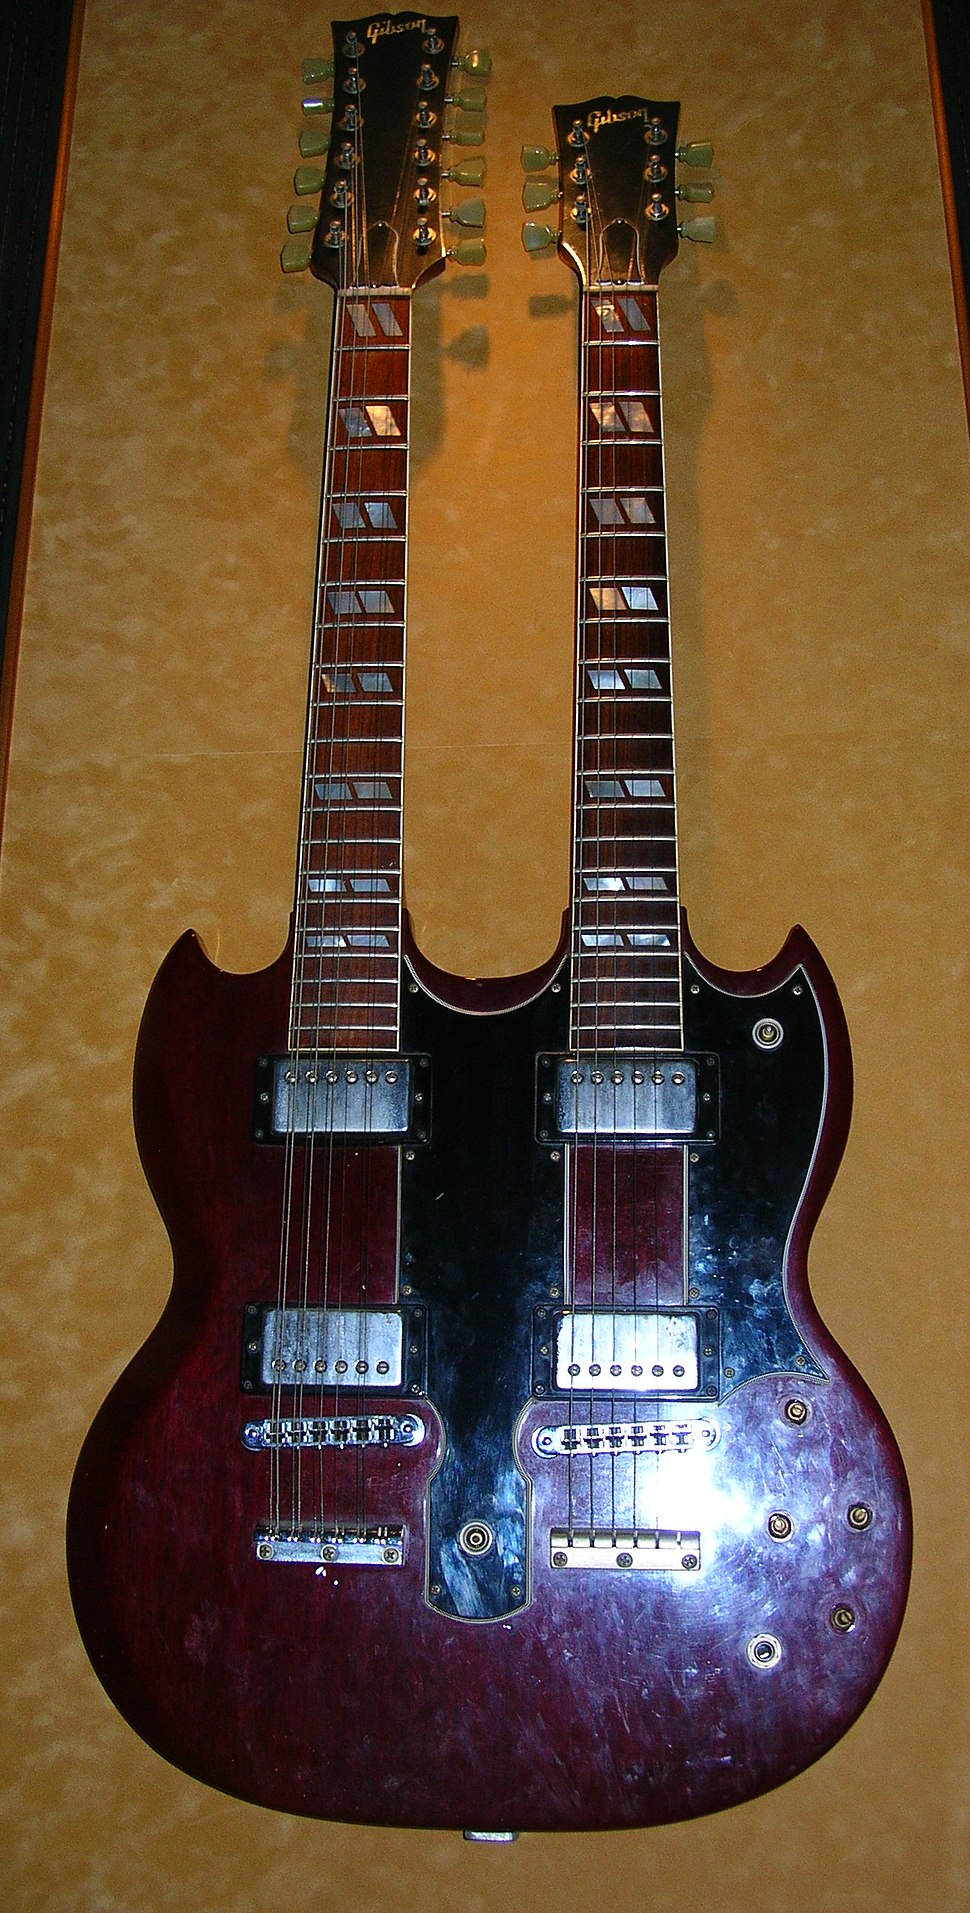 Jimmy Page%27s double-neck Gibson guitar, Hard Rock Cafe Hollywood